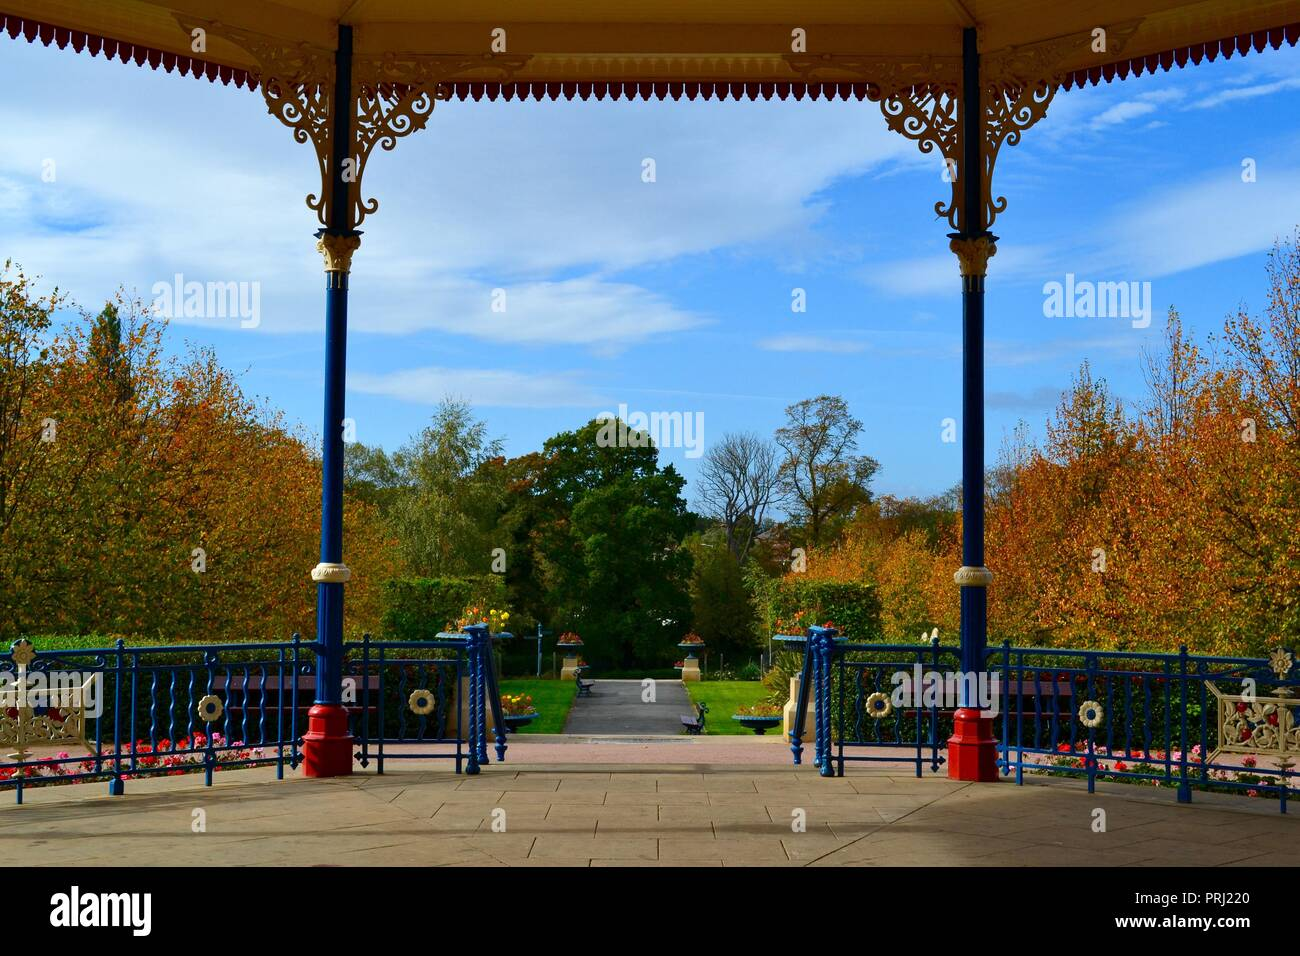 The stunning Autumn view from the beautiful, traditional victorian  bandstand at Ropner Park, Stockton-on-Tees, UK. - Stock Image